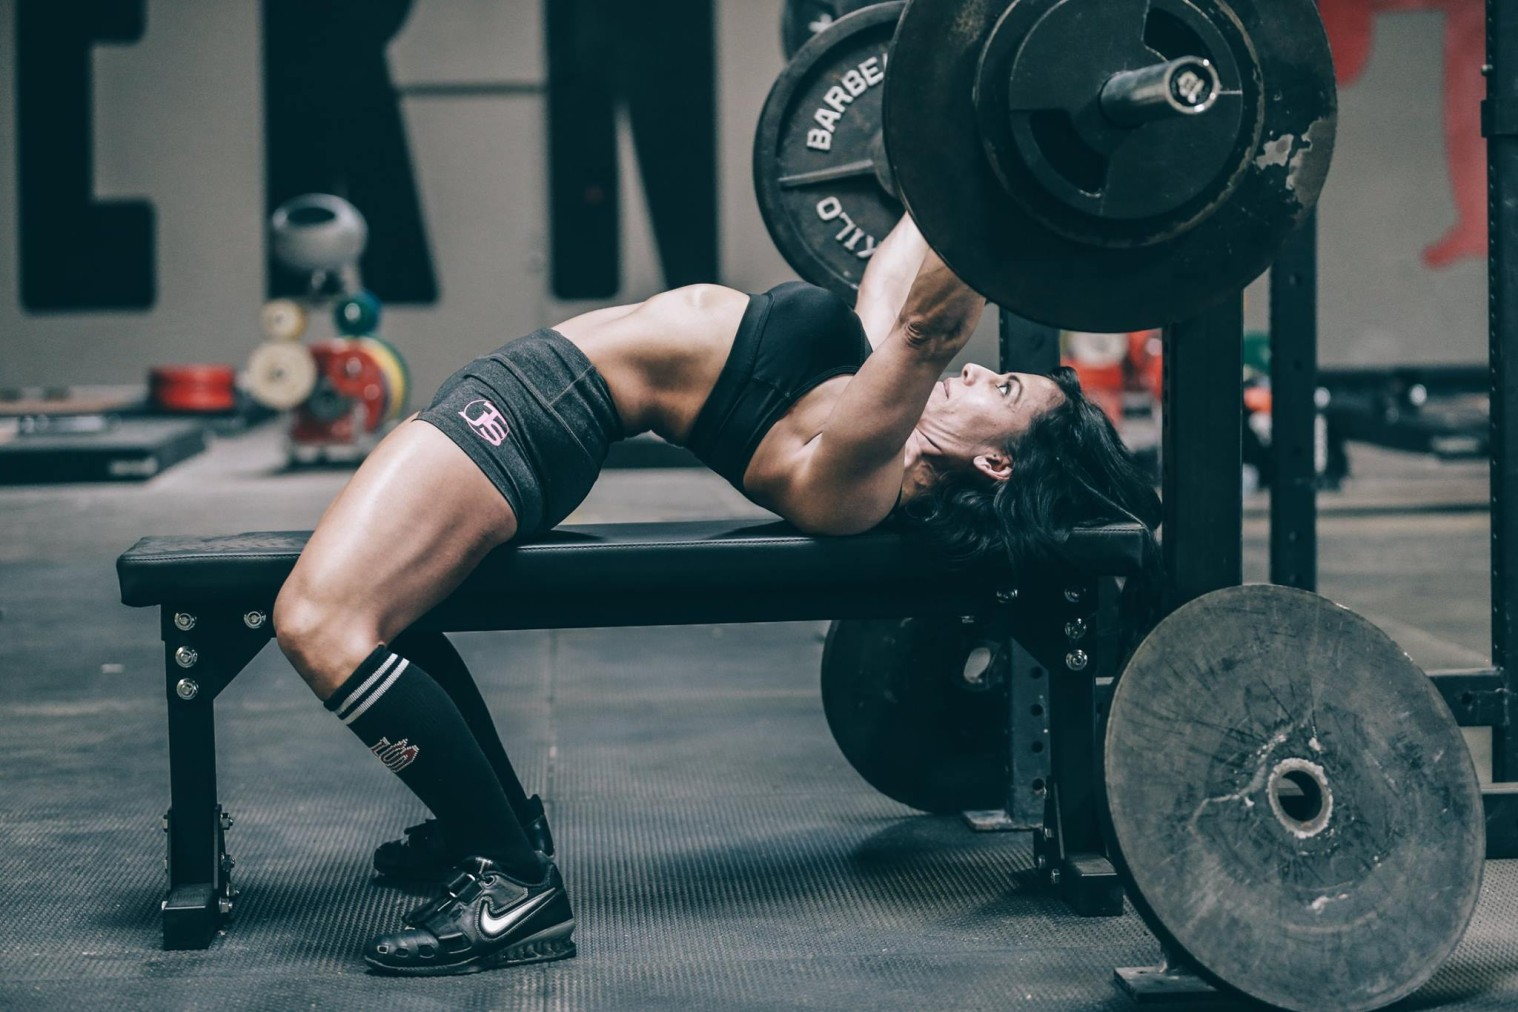 Why Do Some Women Arch Their Back When They Bench Press